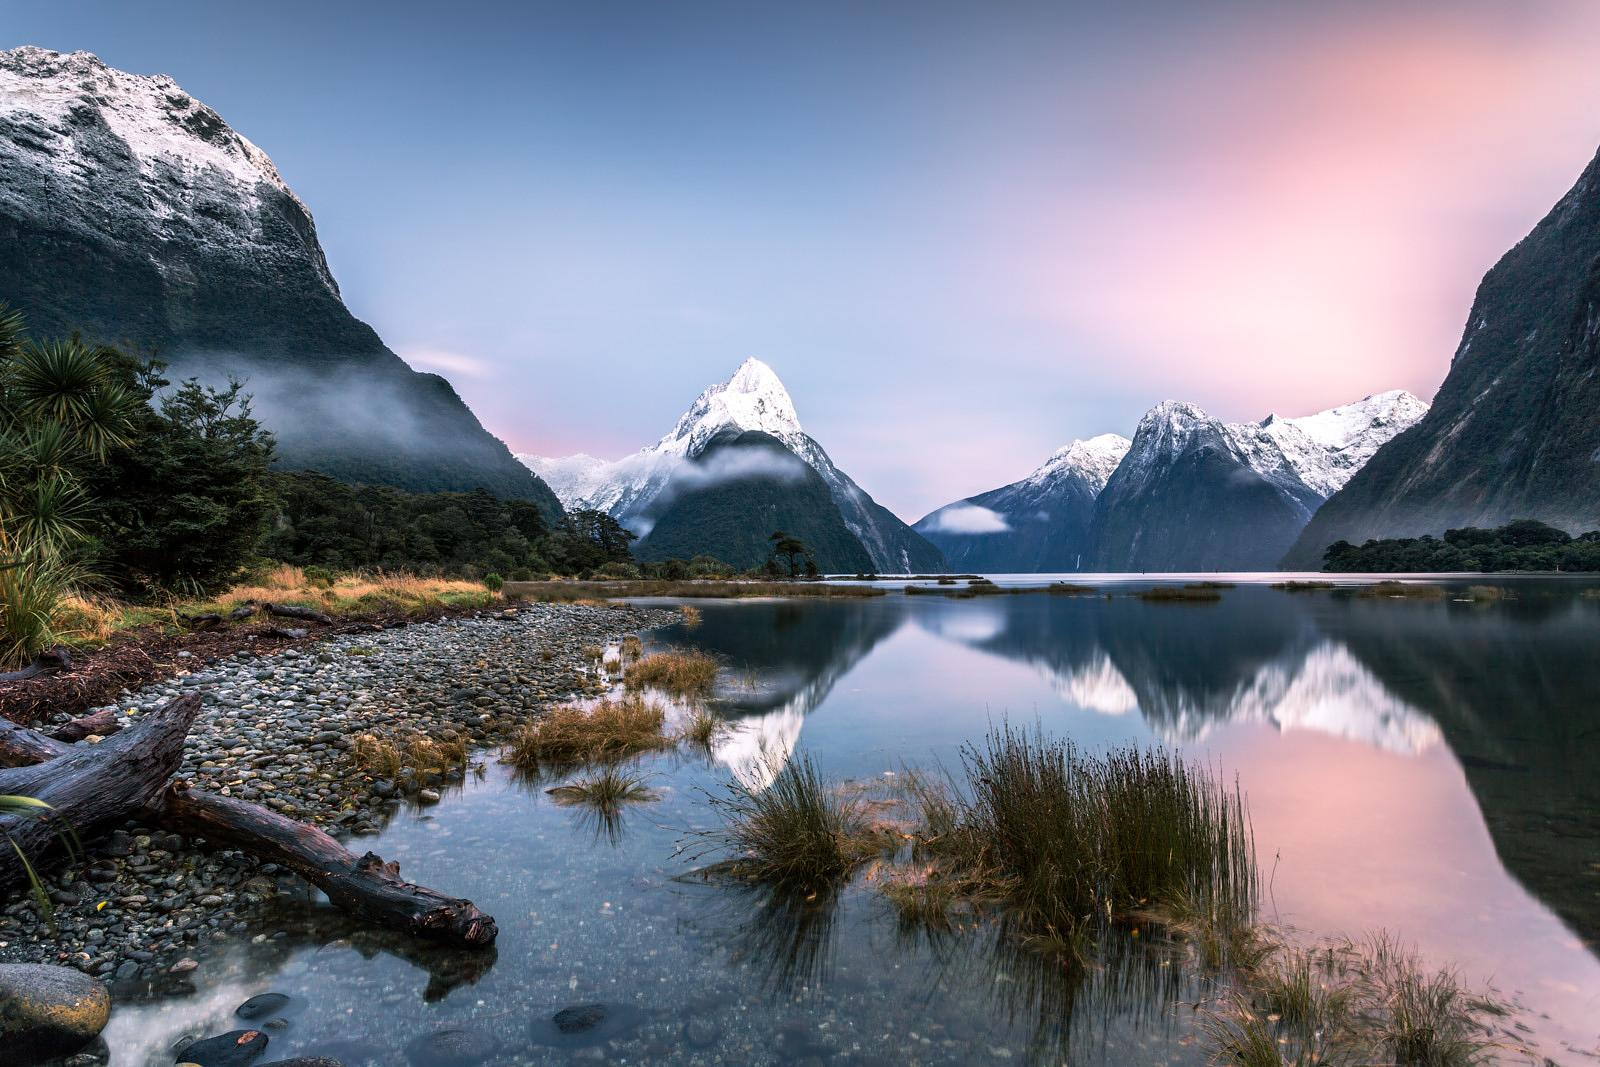 Iconic view of Milford Sound at sunrise, New Zealand